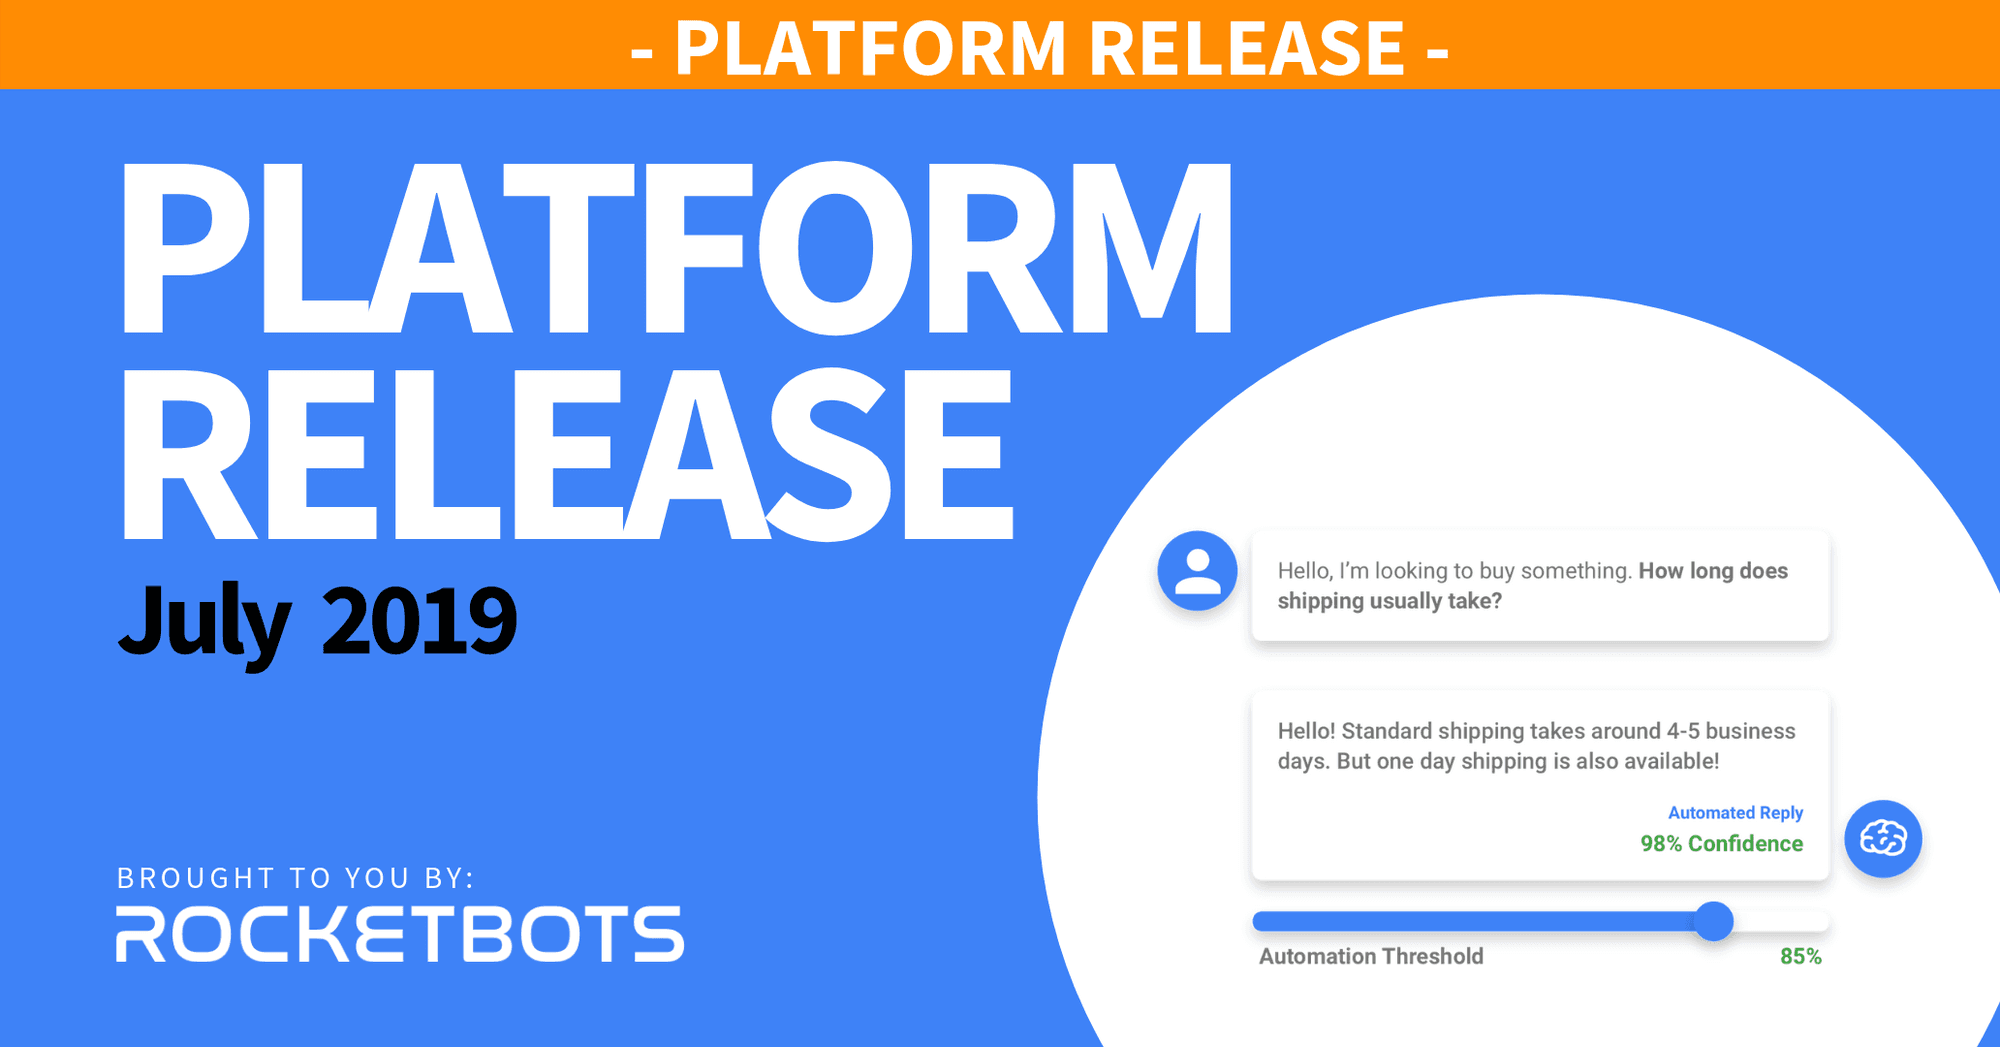 The July 2019 Release - Snippets & Facebook Comment DMs